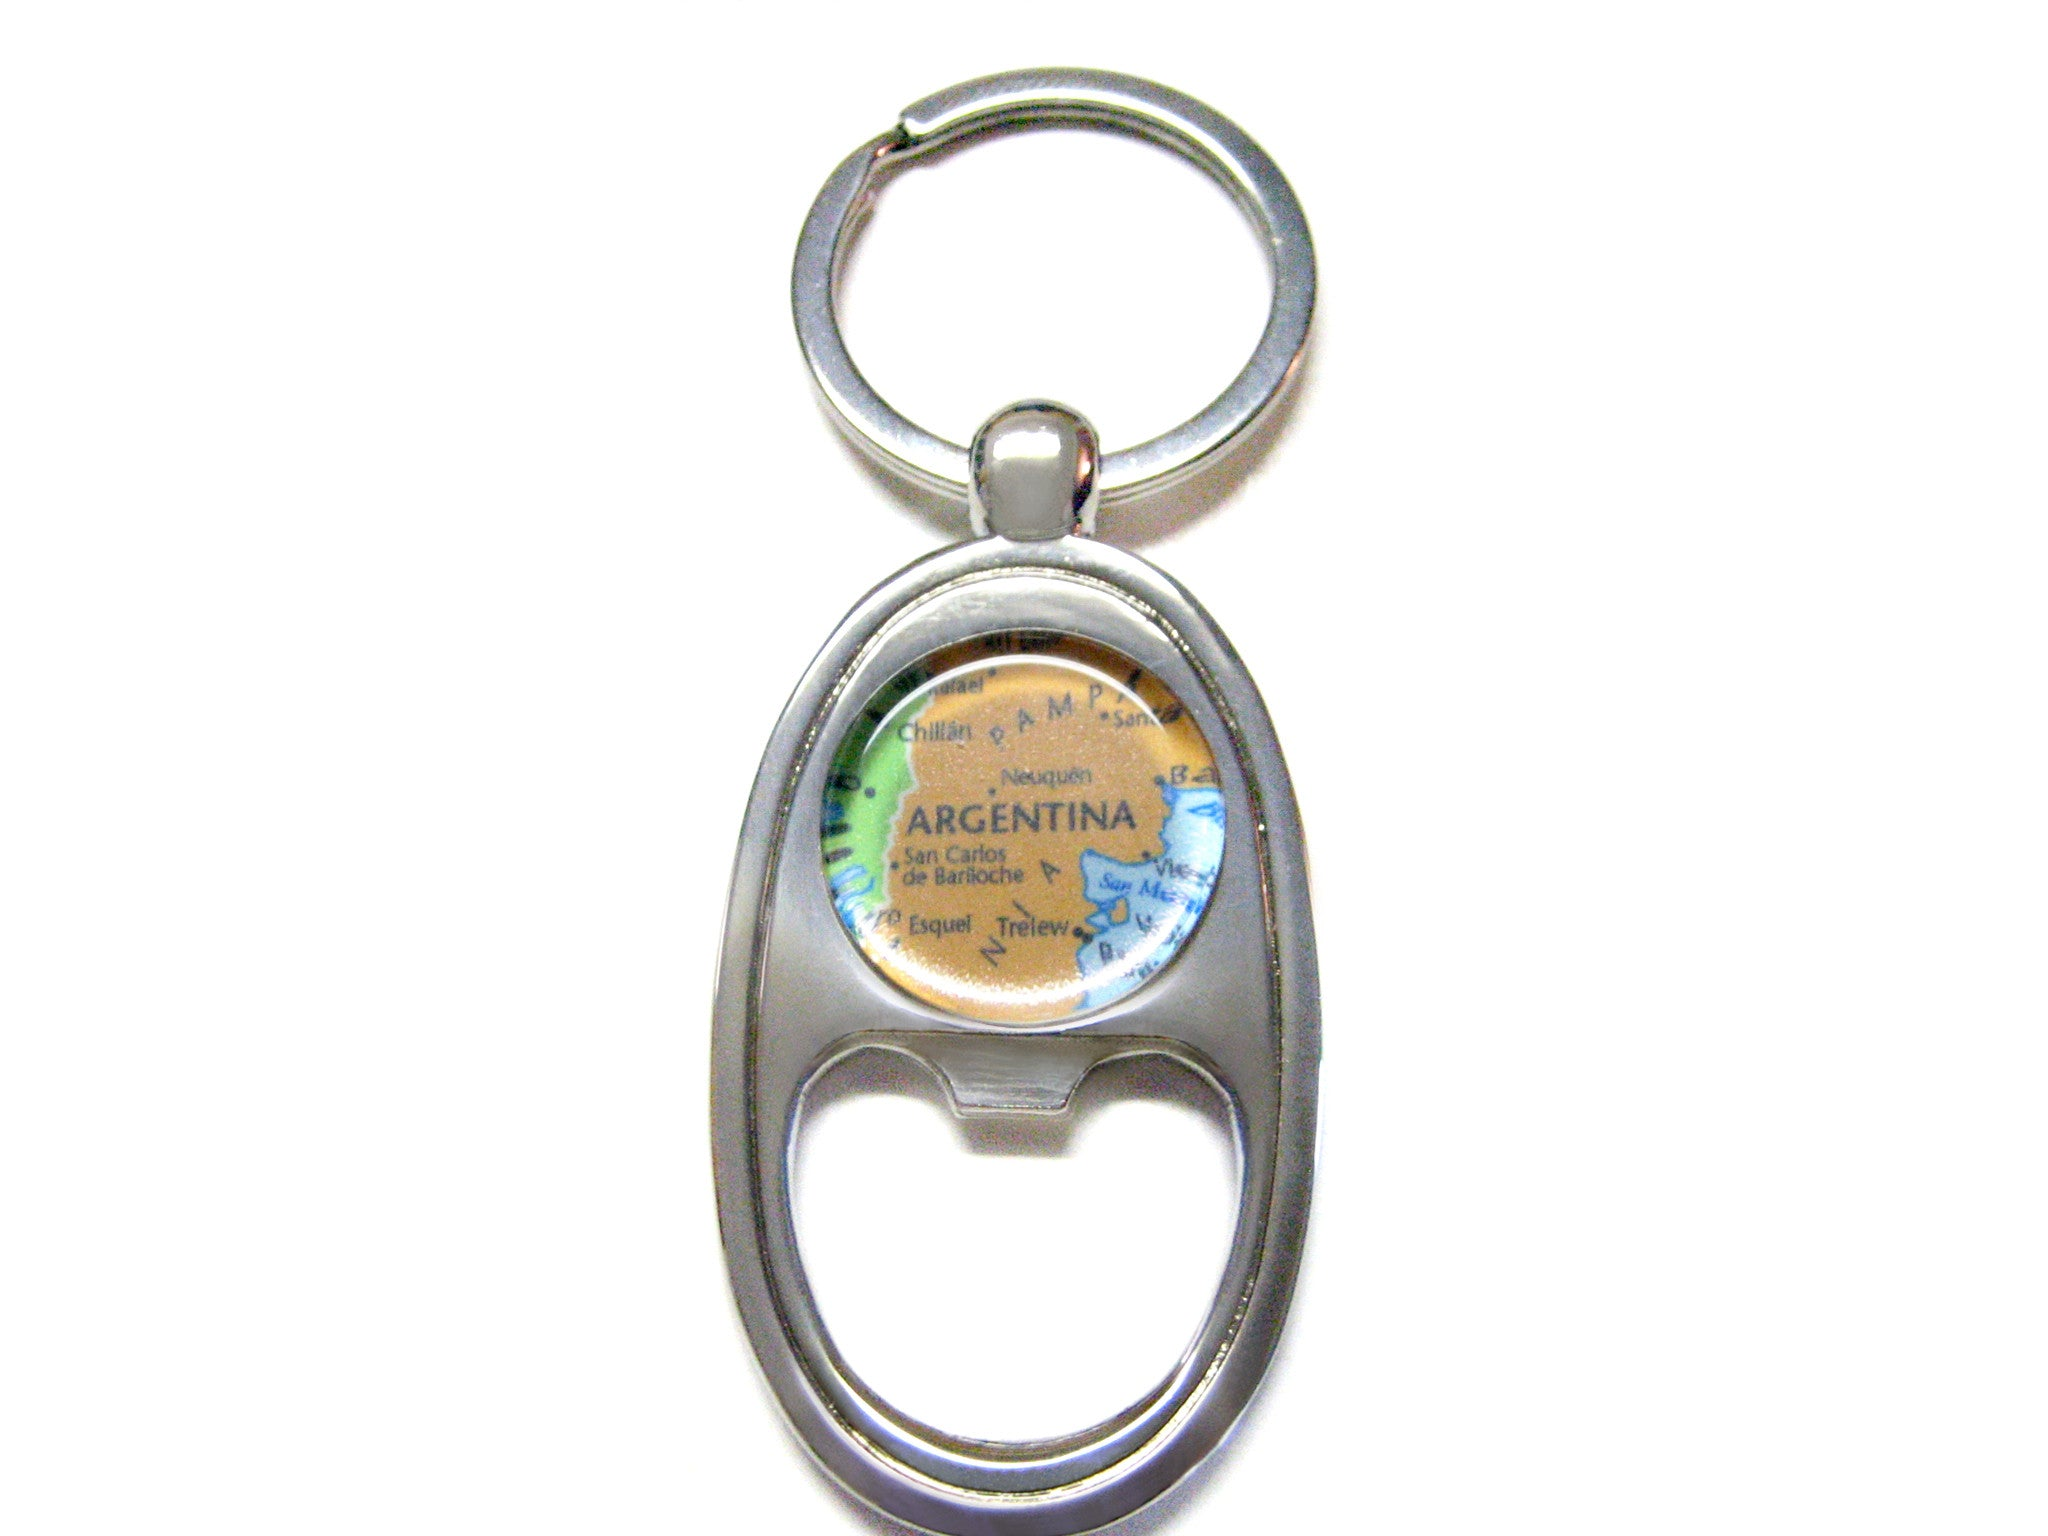 Argentina Map Bottle Opener Key Chain